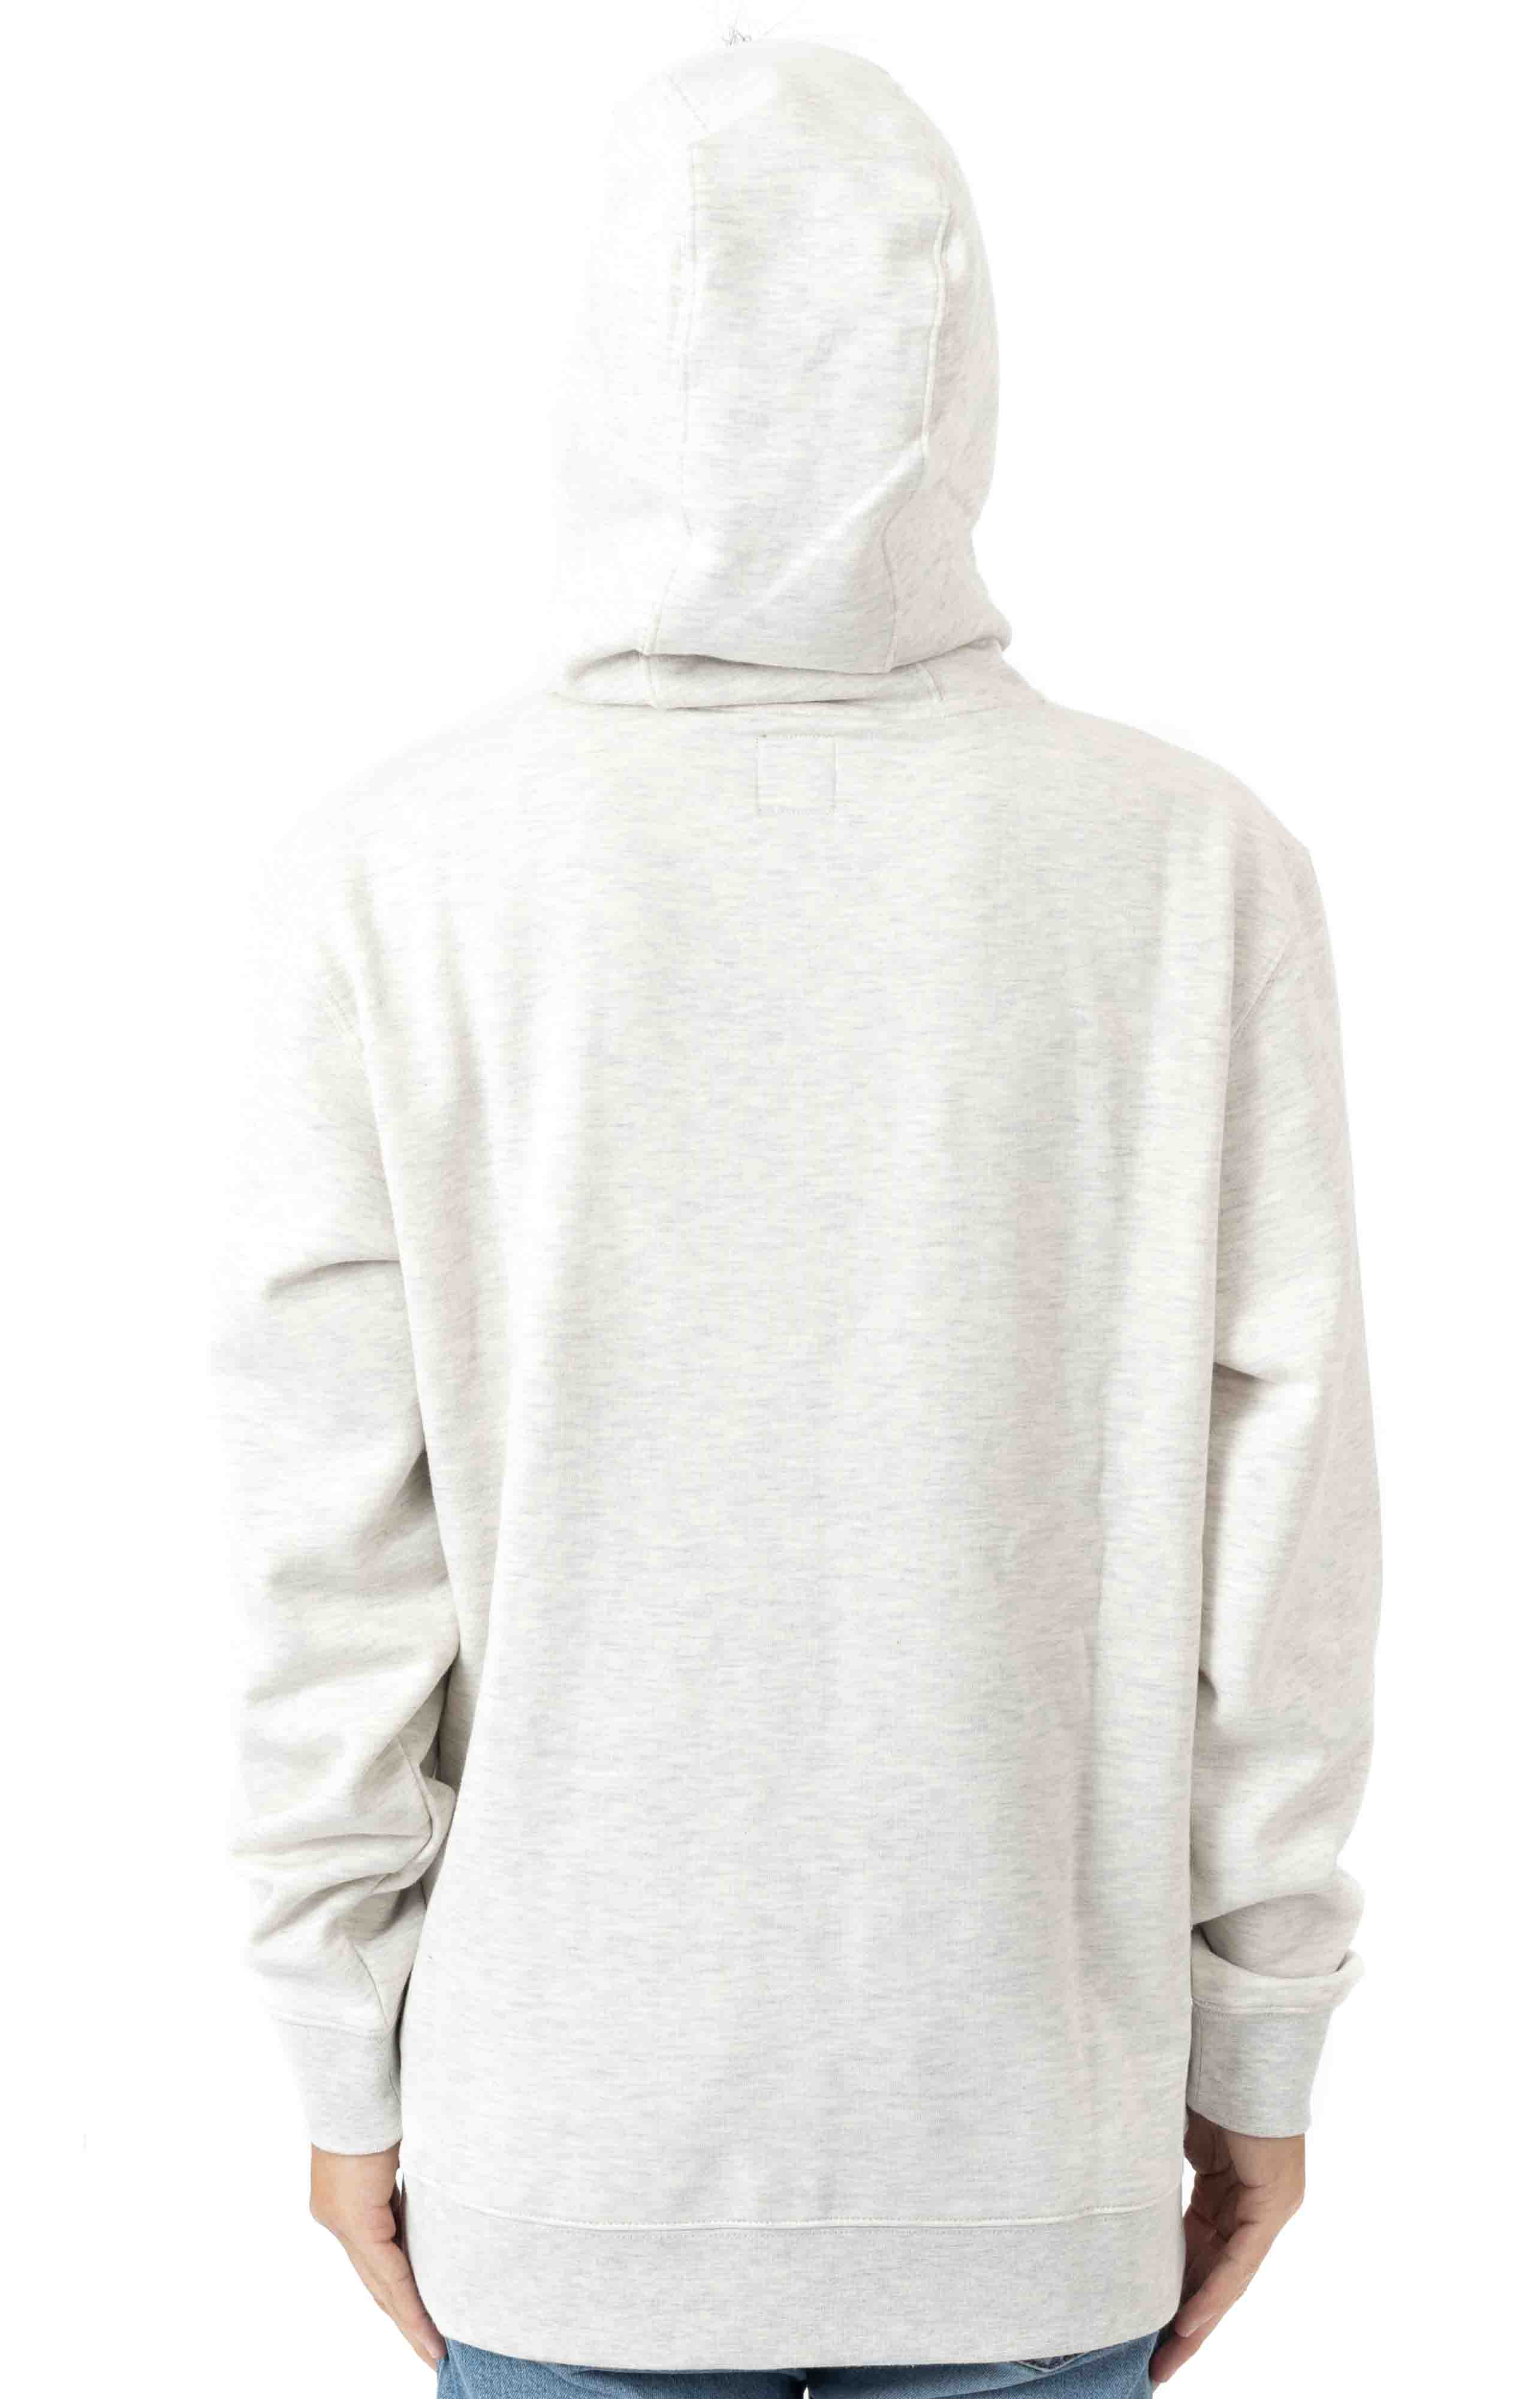 66 Champs Pullover Hoodie - Oatmeal Heather  3